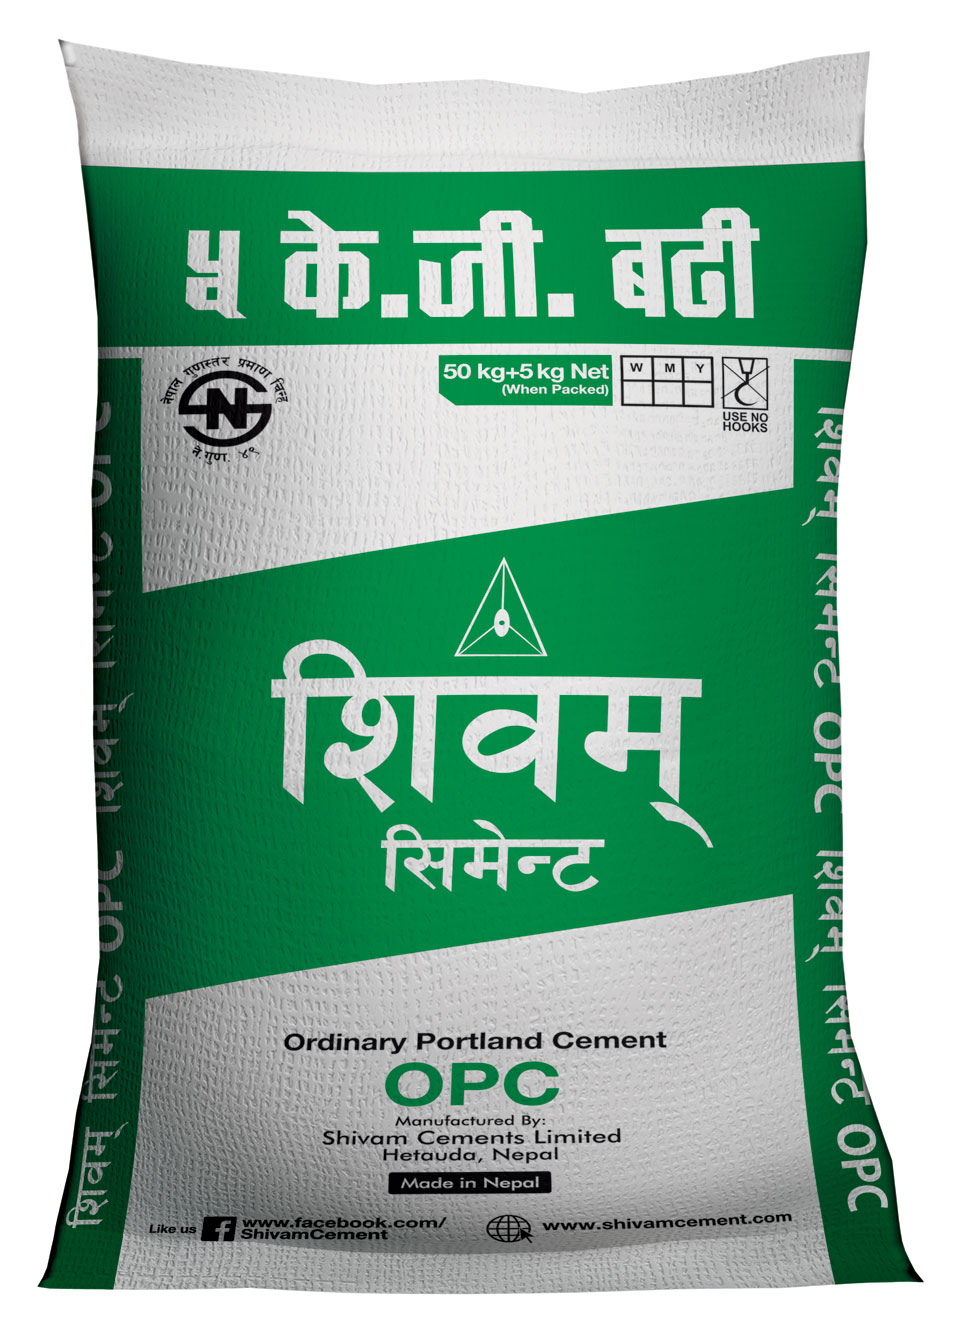 Shivam to be first cement company to go public